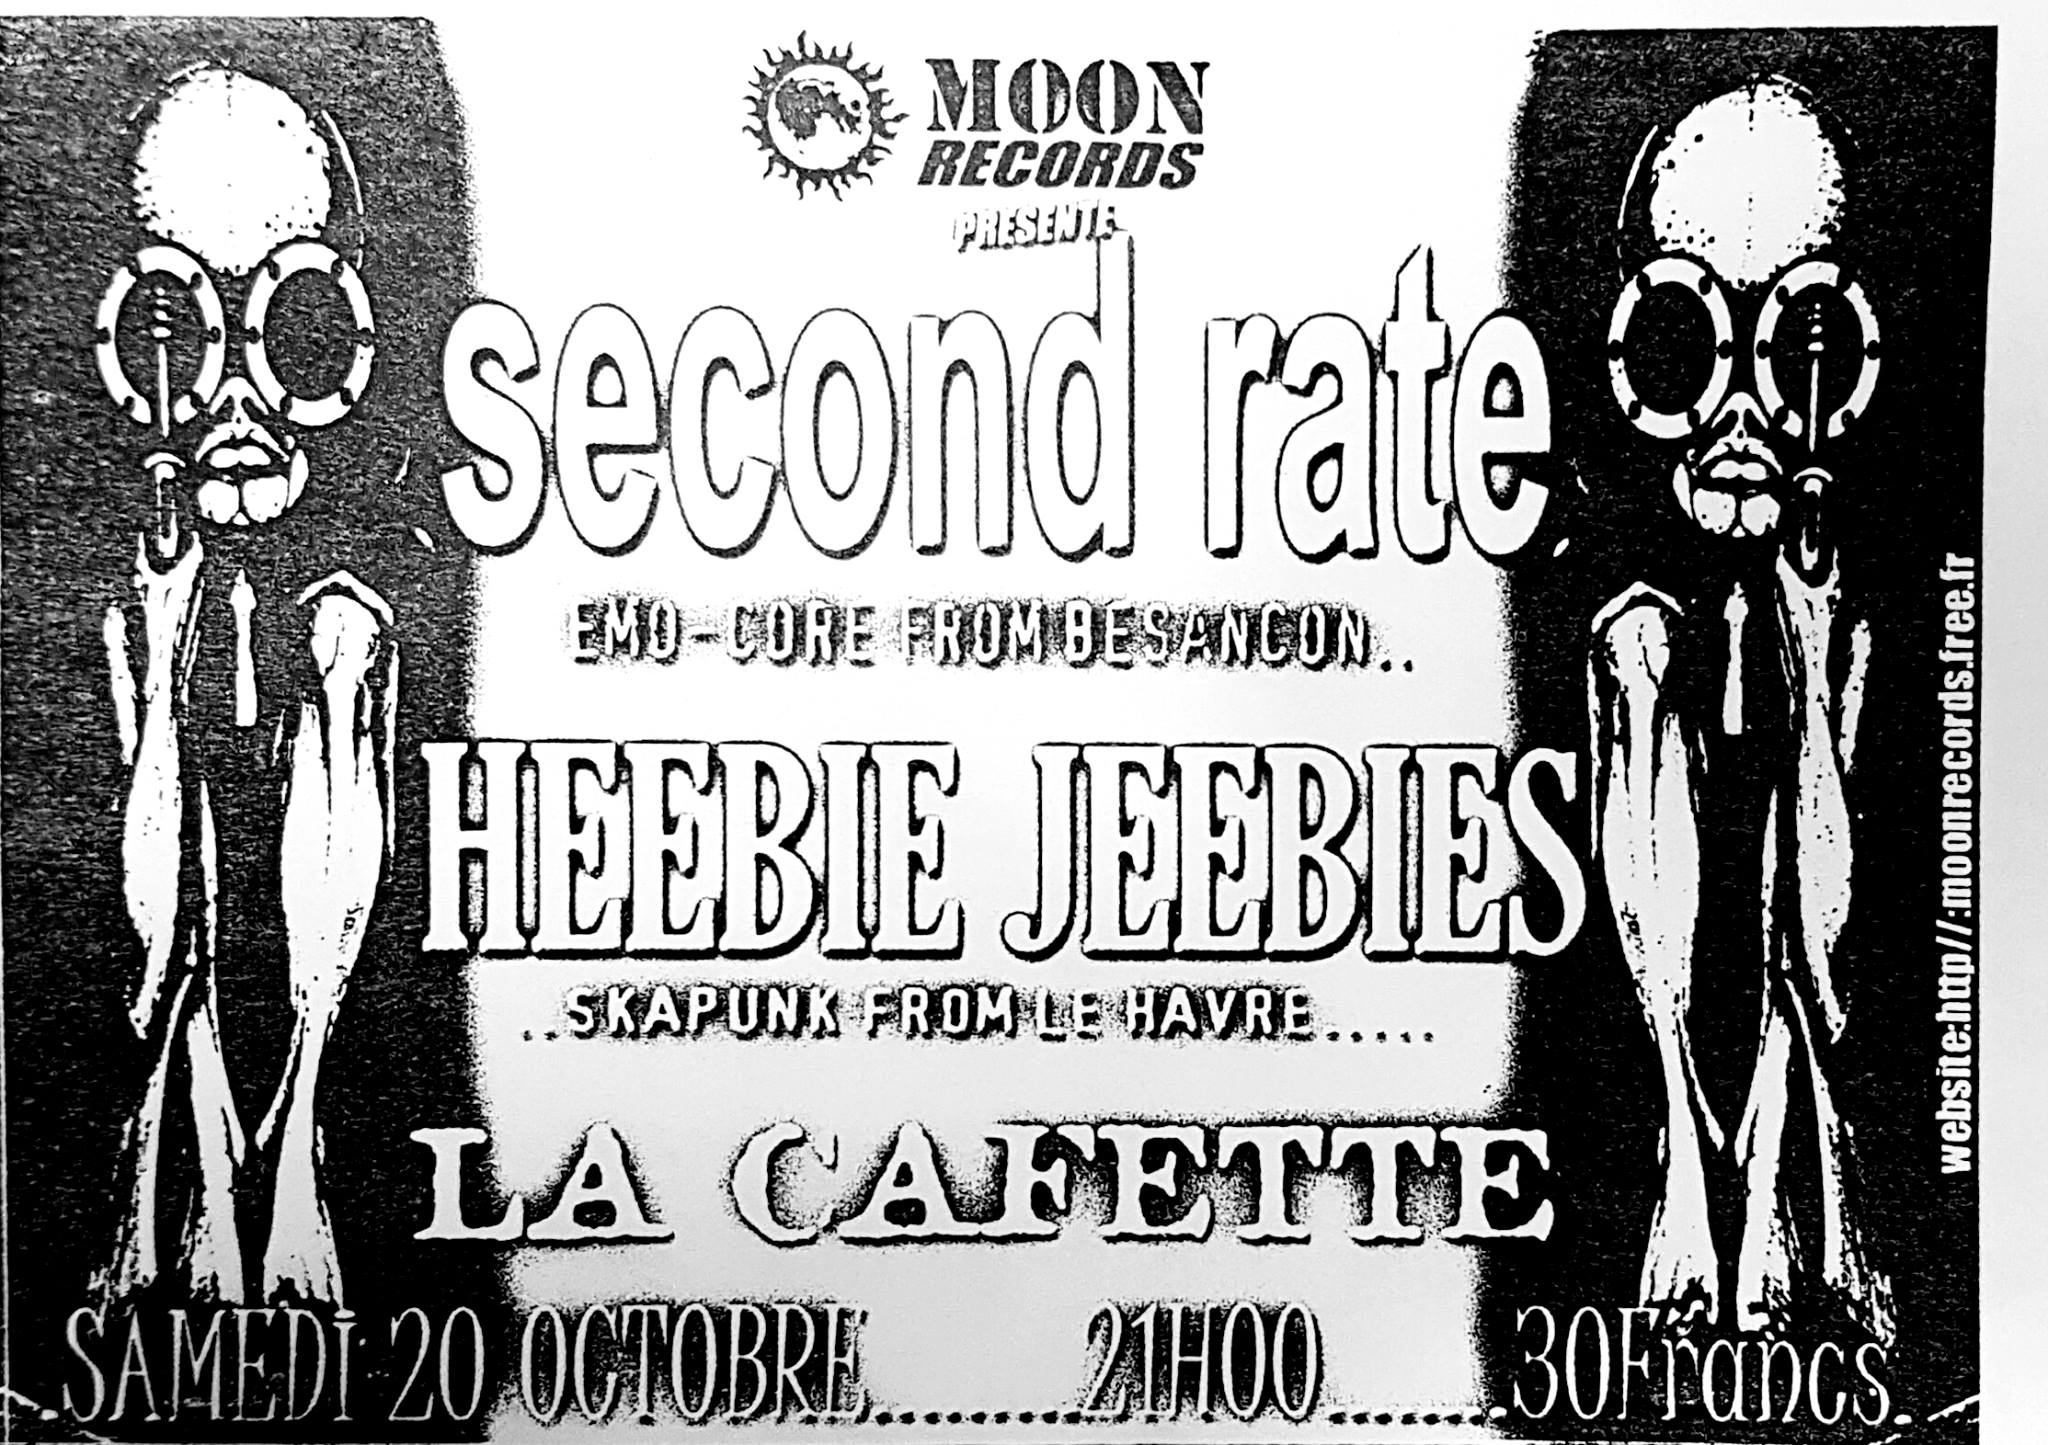 "20 octobre 2001 Second Rate, Heebie Jeebies au Havre ""la Cafette"""